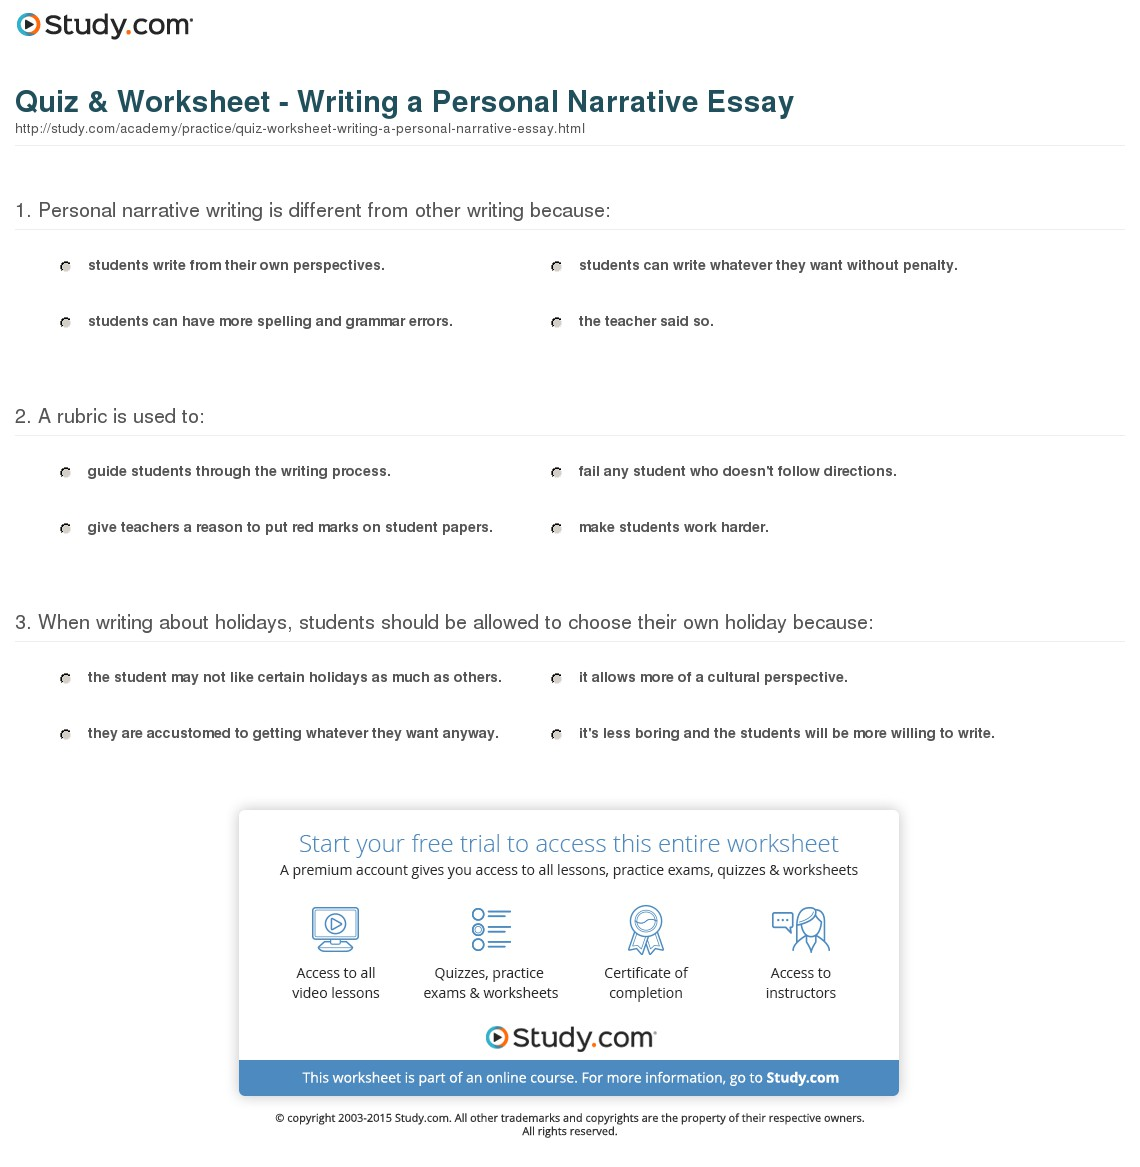 023 Essay Example Quiz Worksheet Writing Personal Narrative How To Start An Beautiful Informative Write 4th Grade Do You Introduction Full